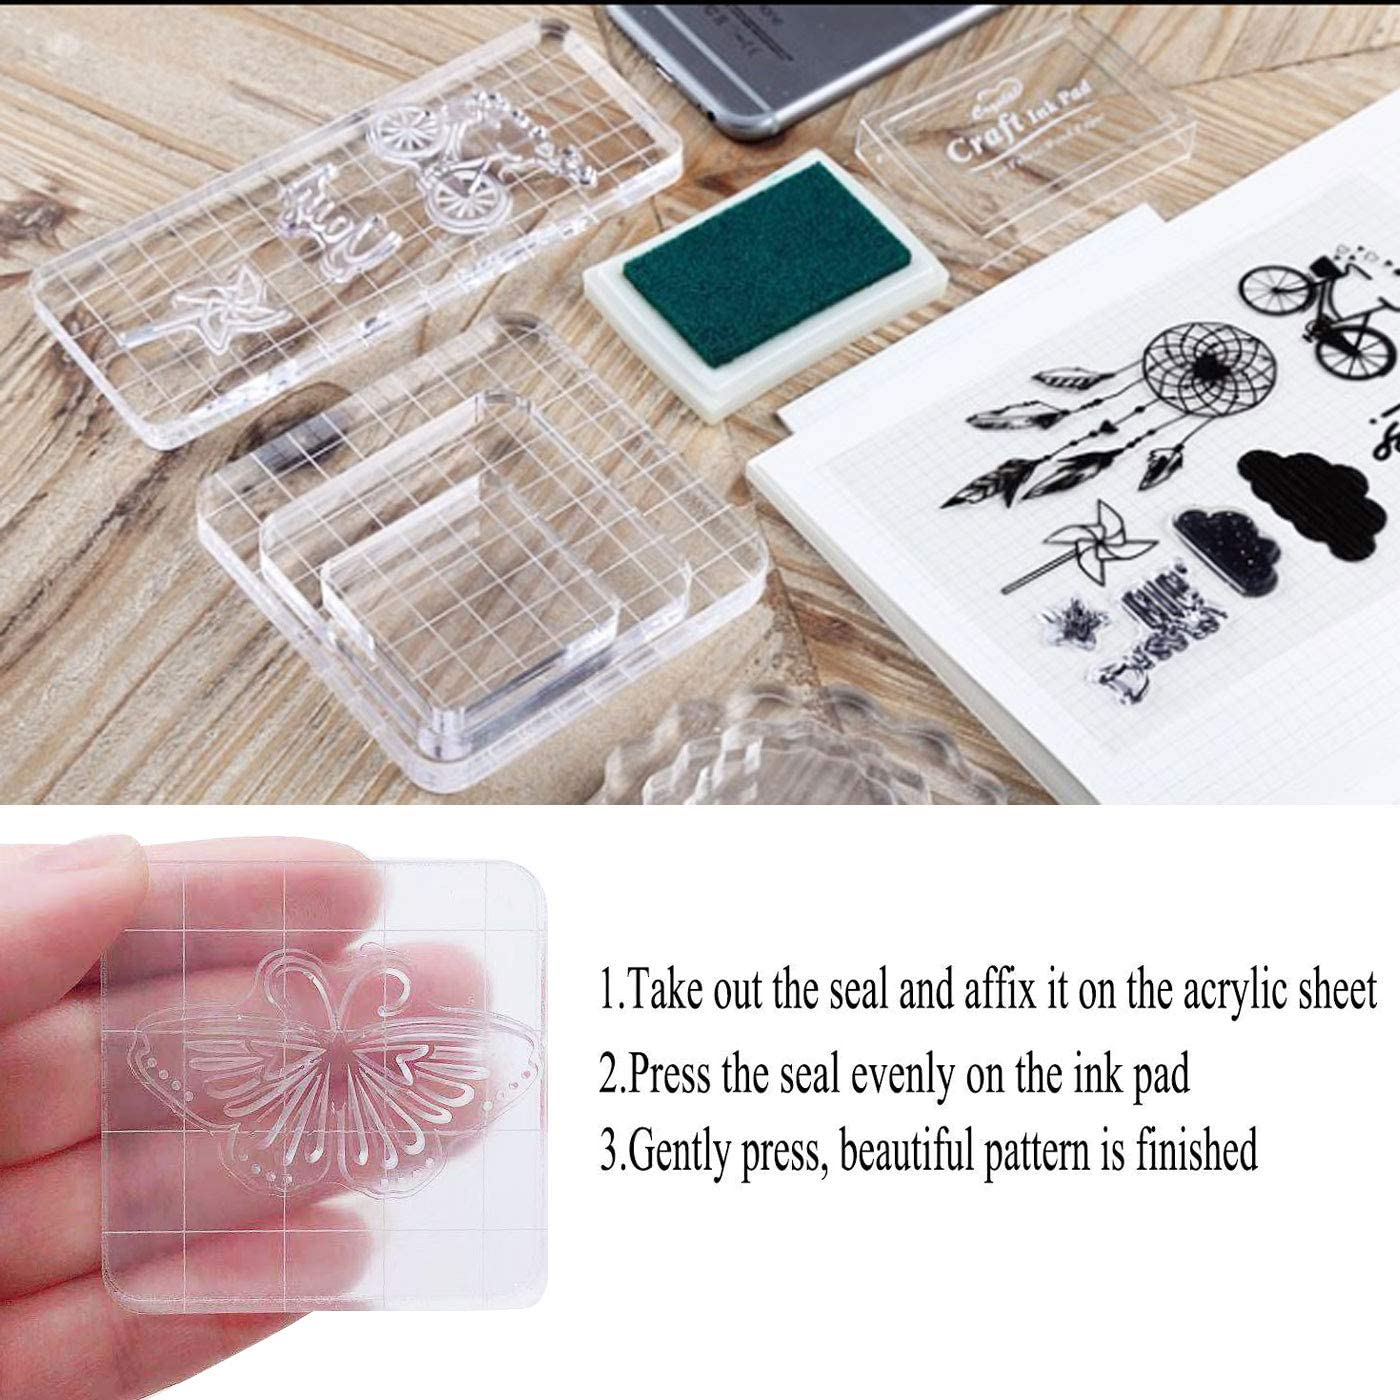 Markeny 6 Pieces Acrylic Stamp Block Clear Stamping Tools Set with Grid Lines for Scrapbooking Crafts Card Making 6 Sizes